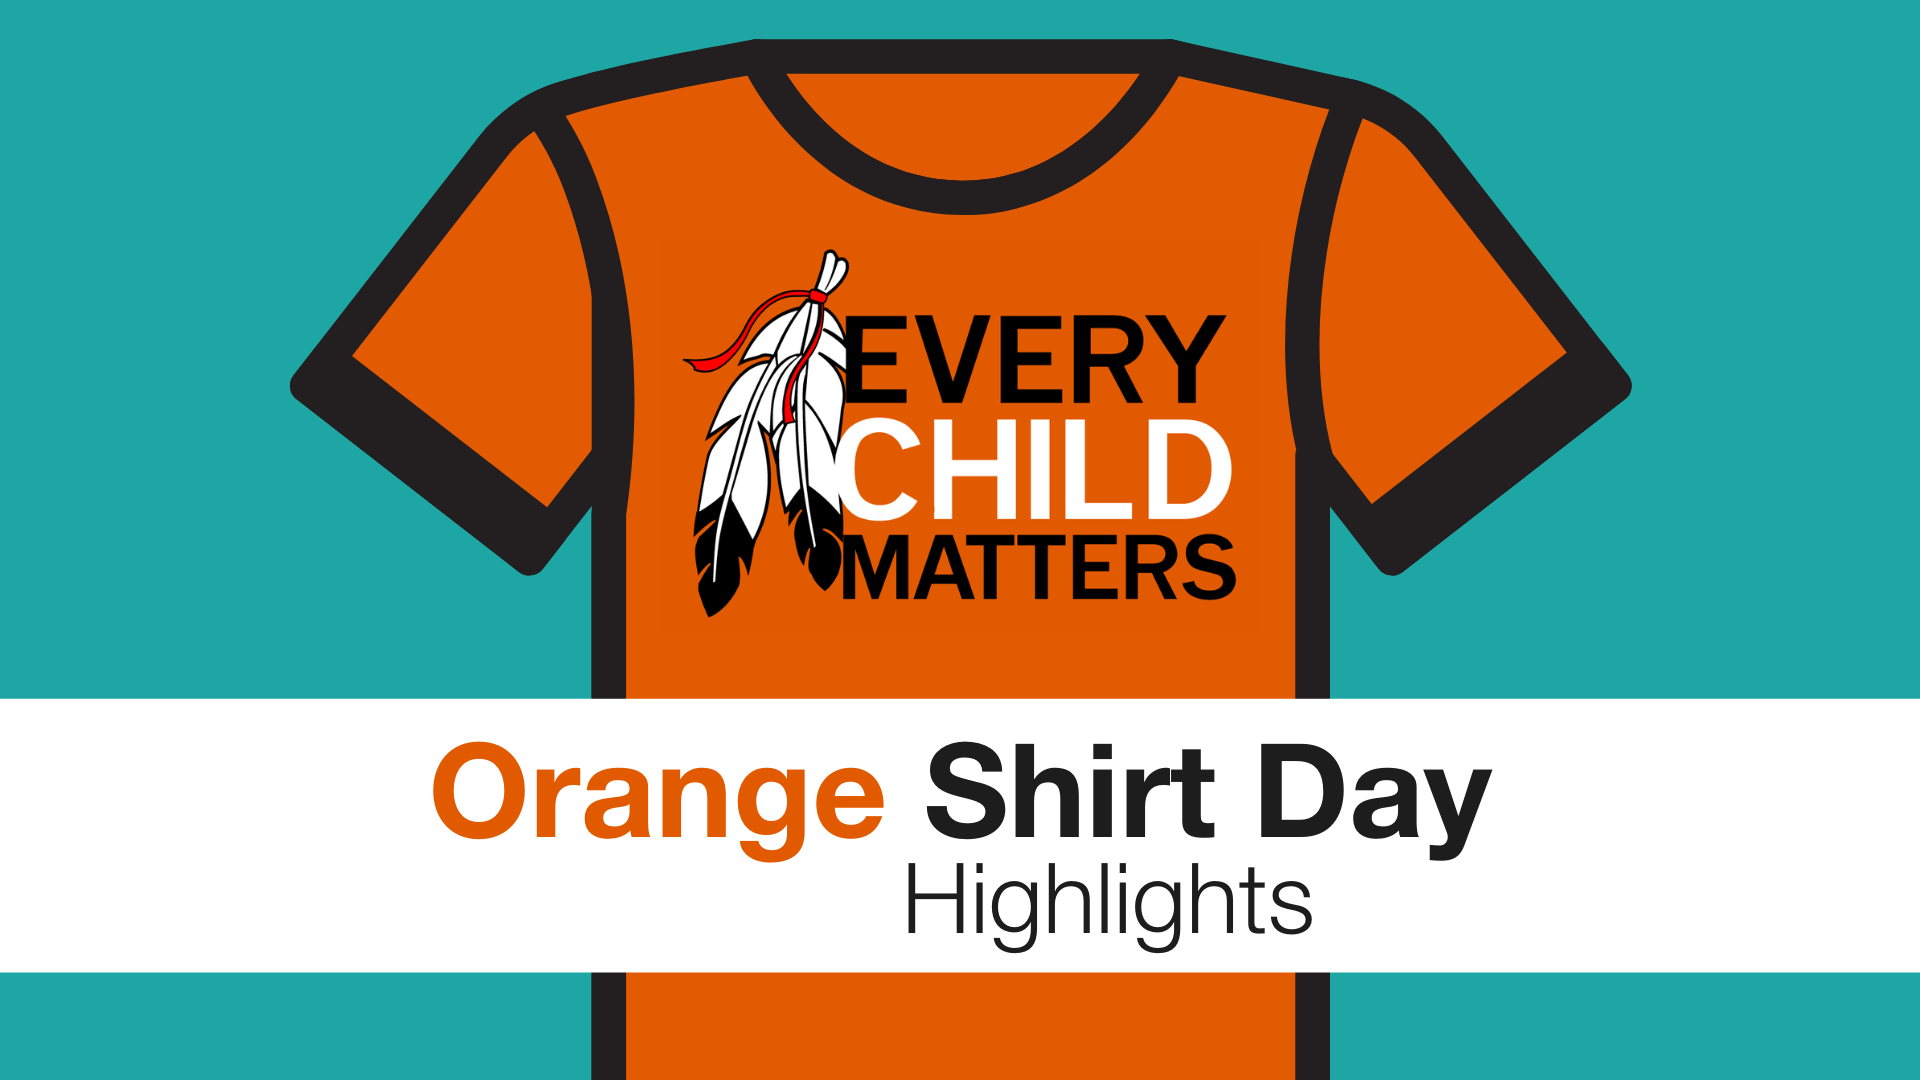 highlights from orange shirt day at the OCSB